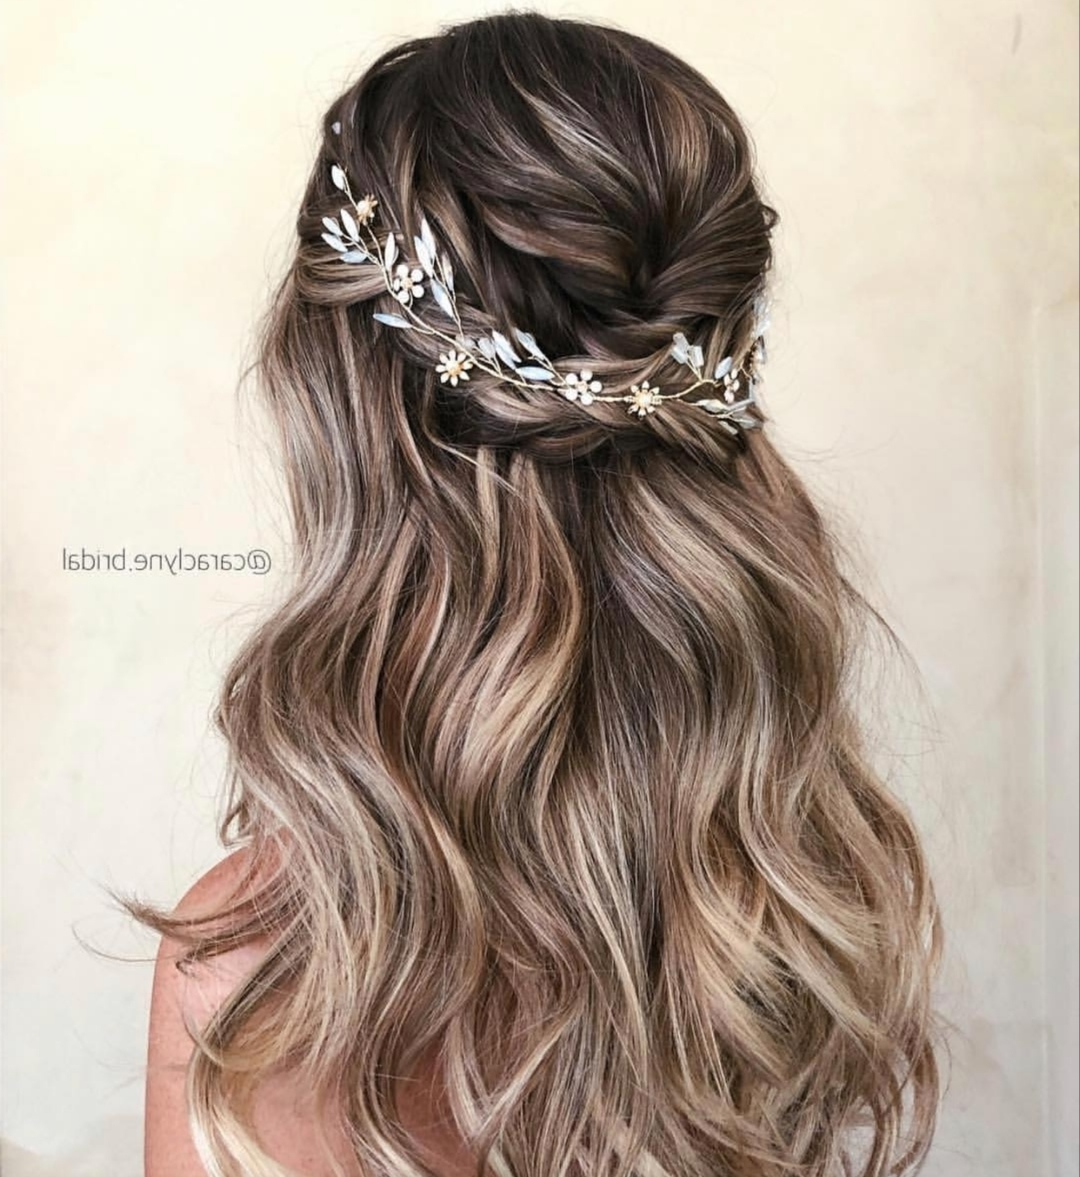 22 Half Up Wedding Hairstyles For 2020 ~ Kiss The Bride Magazine Medium Length Half Up Wedding Hairstyles